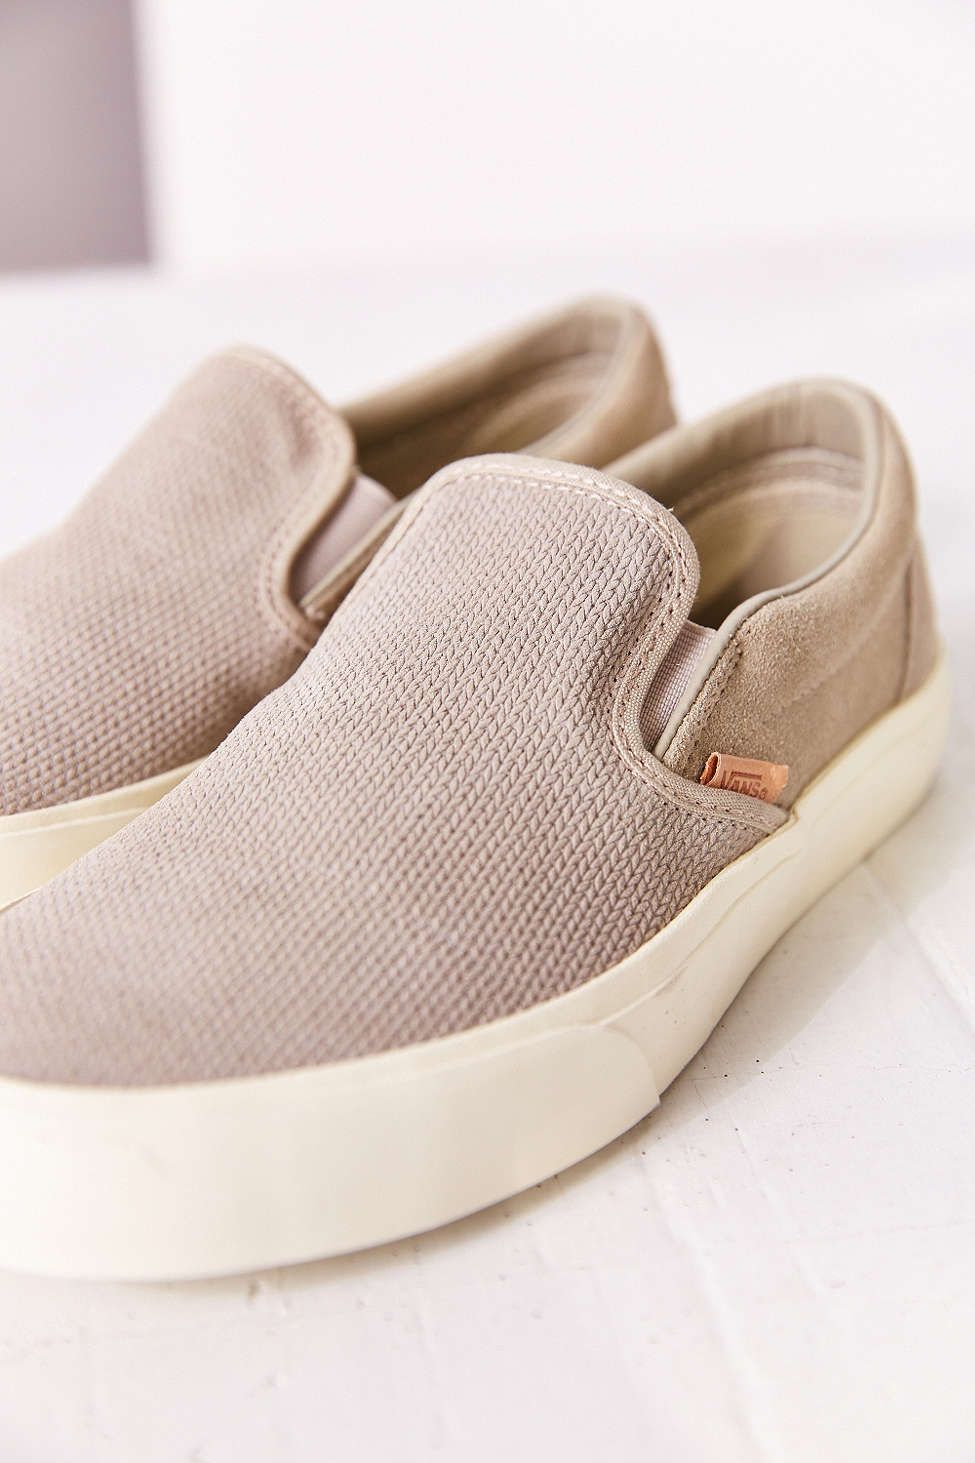 Can i buy vans for cheap mens vans slip on shoes vans on the wall - Vans Classic Knit Suede Slip On Women S Sneaker Knitwear Sneakers Offduty Suede Shoes Streetwear Knit Casual Leather